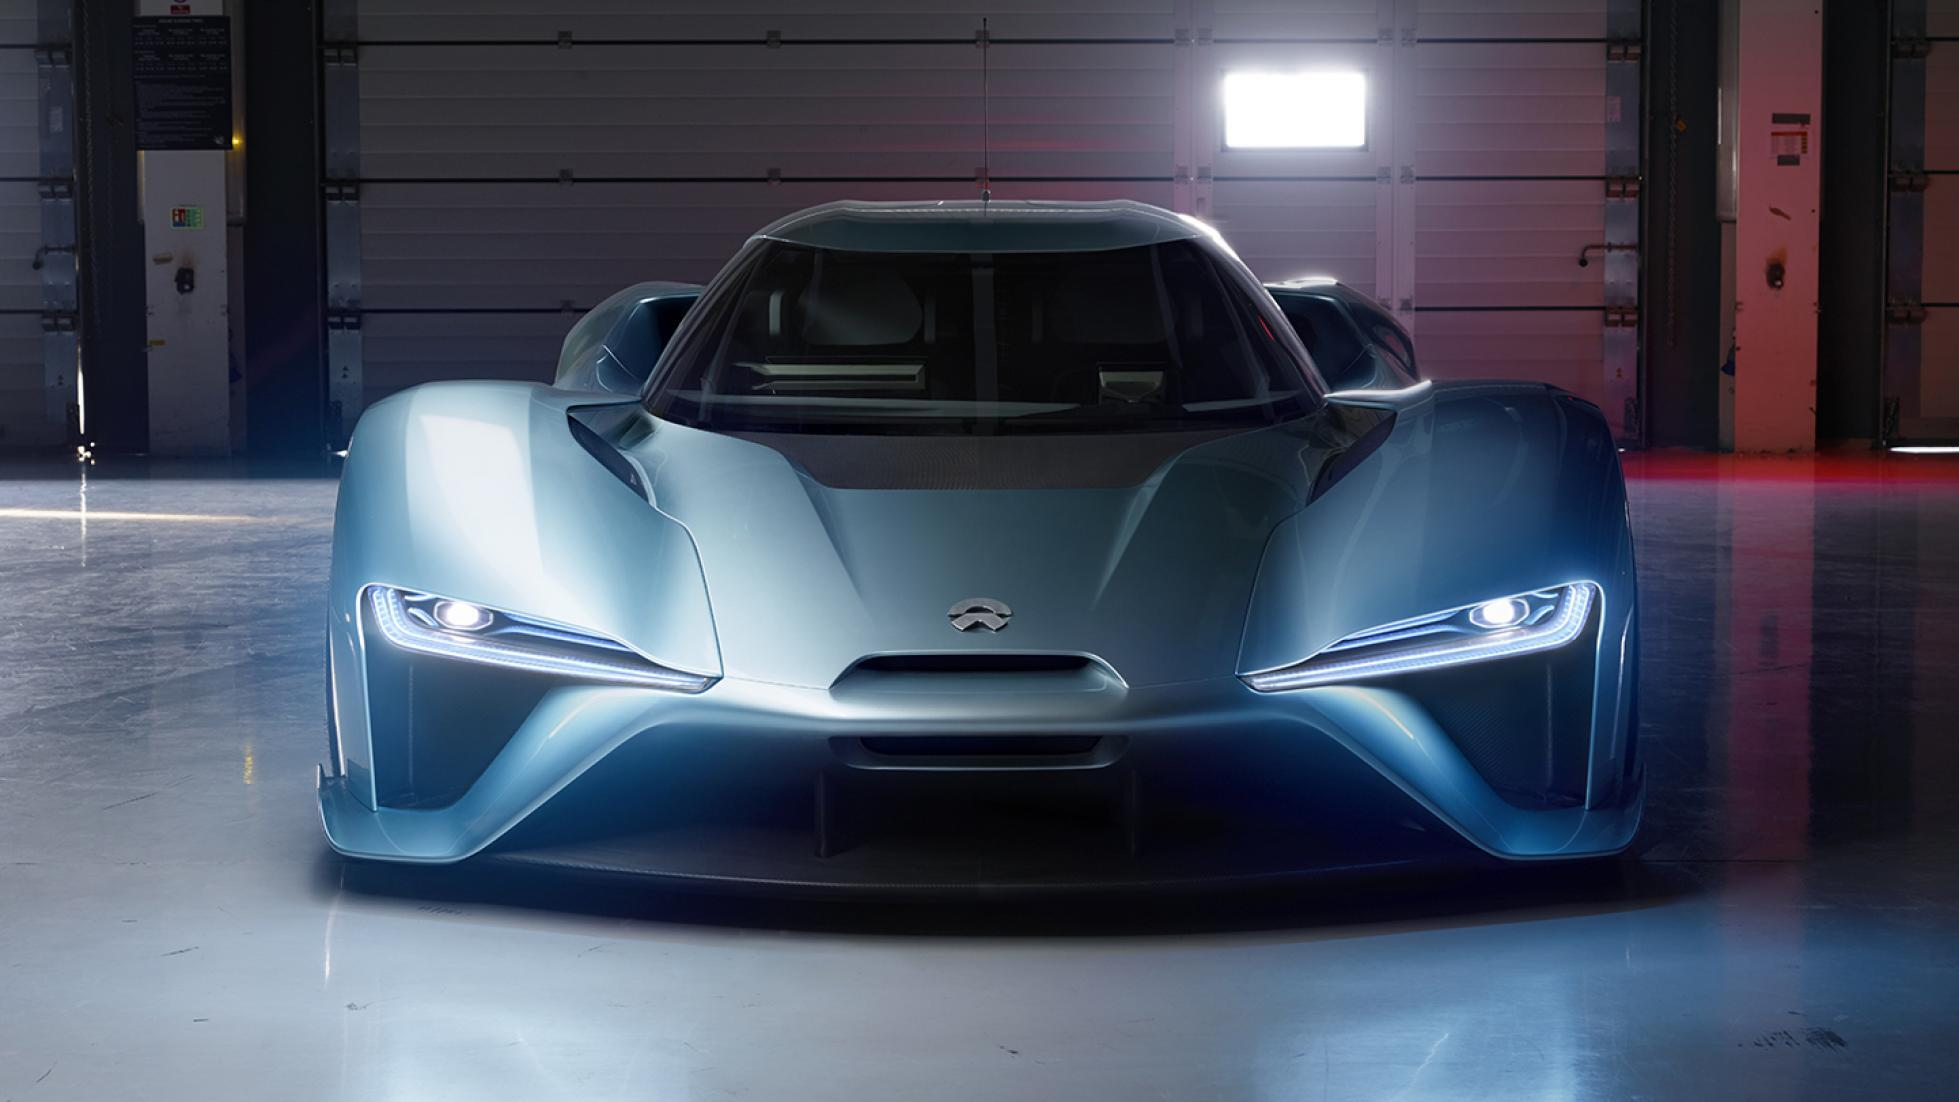 Gallery Nio Ep9 The 1 341bhp Electric Supercar